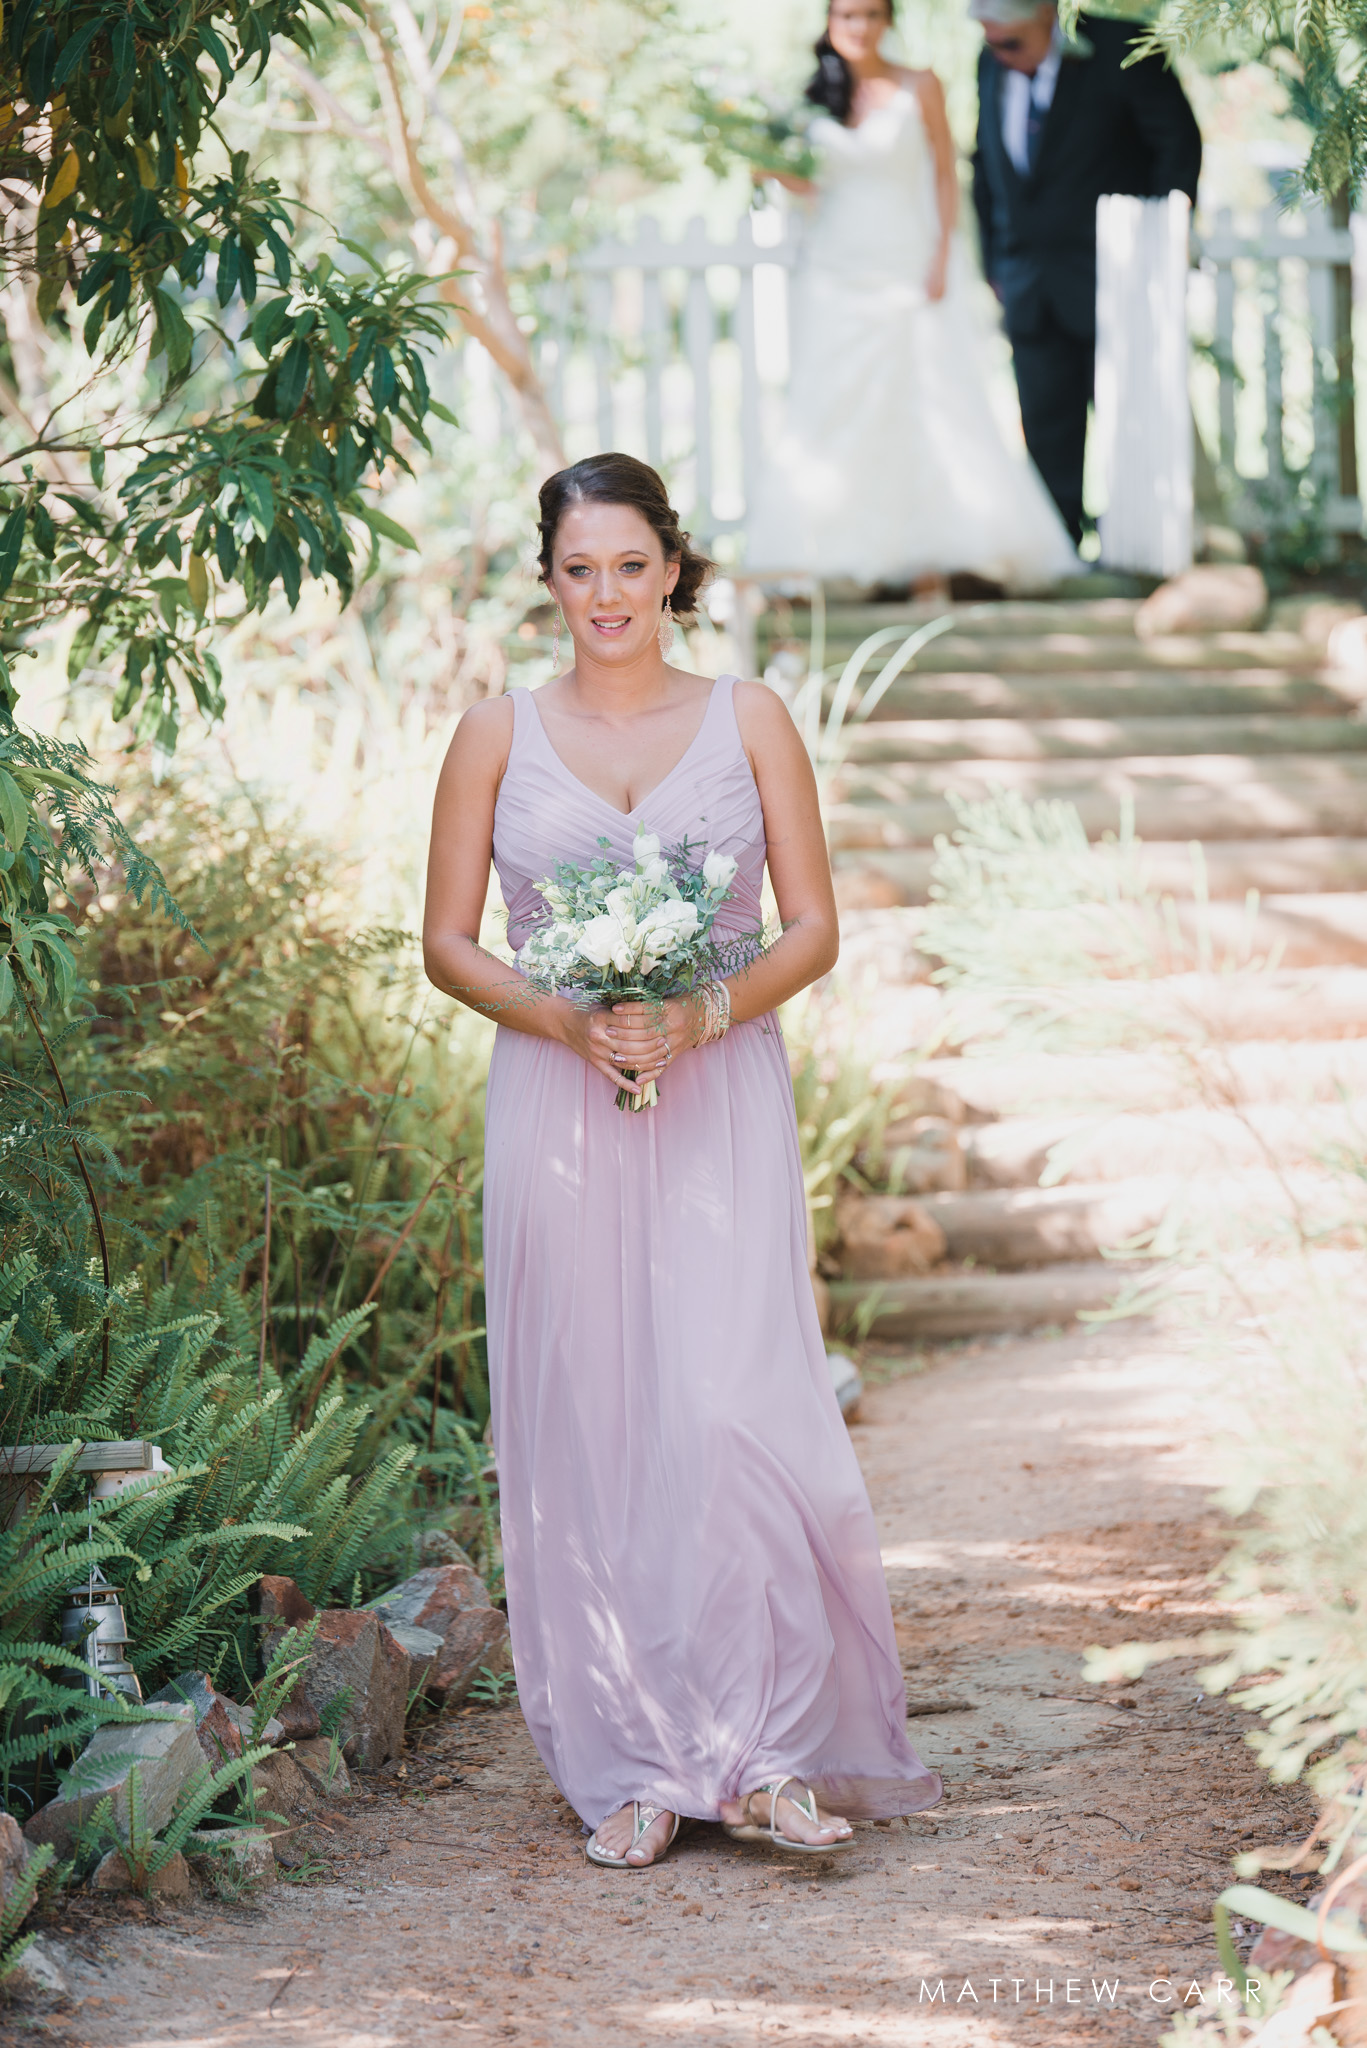 ceremony & after - low res (viewing, social media) (14 of 111).JPG